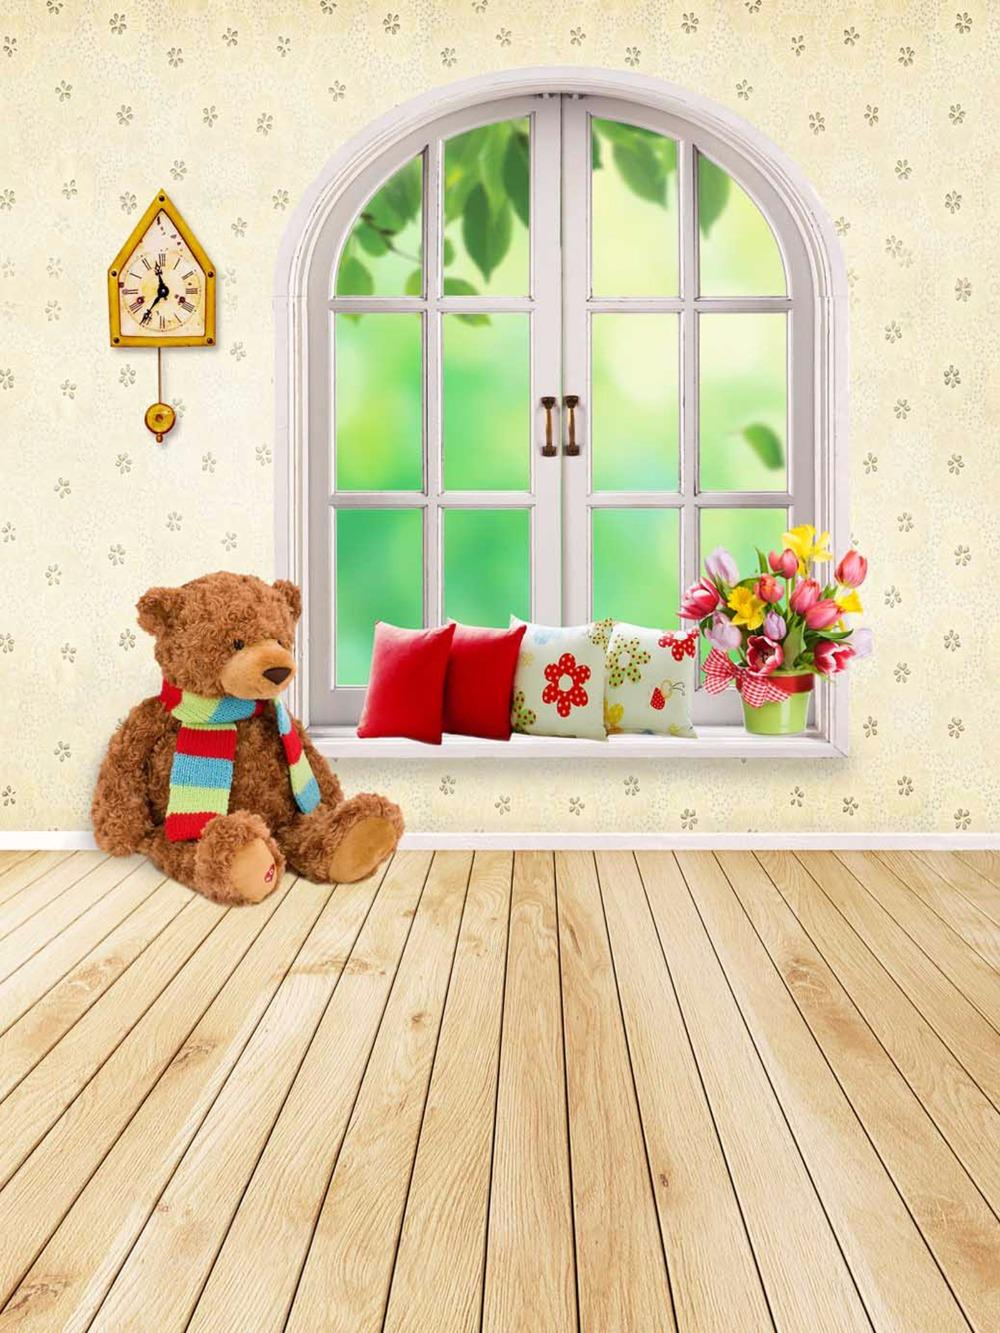 Room Background: 2019 Interior Room Backgrounds For Photo Studio Window